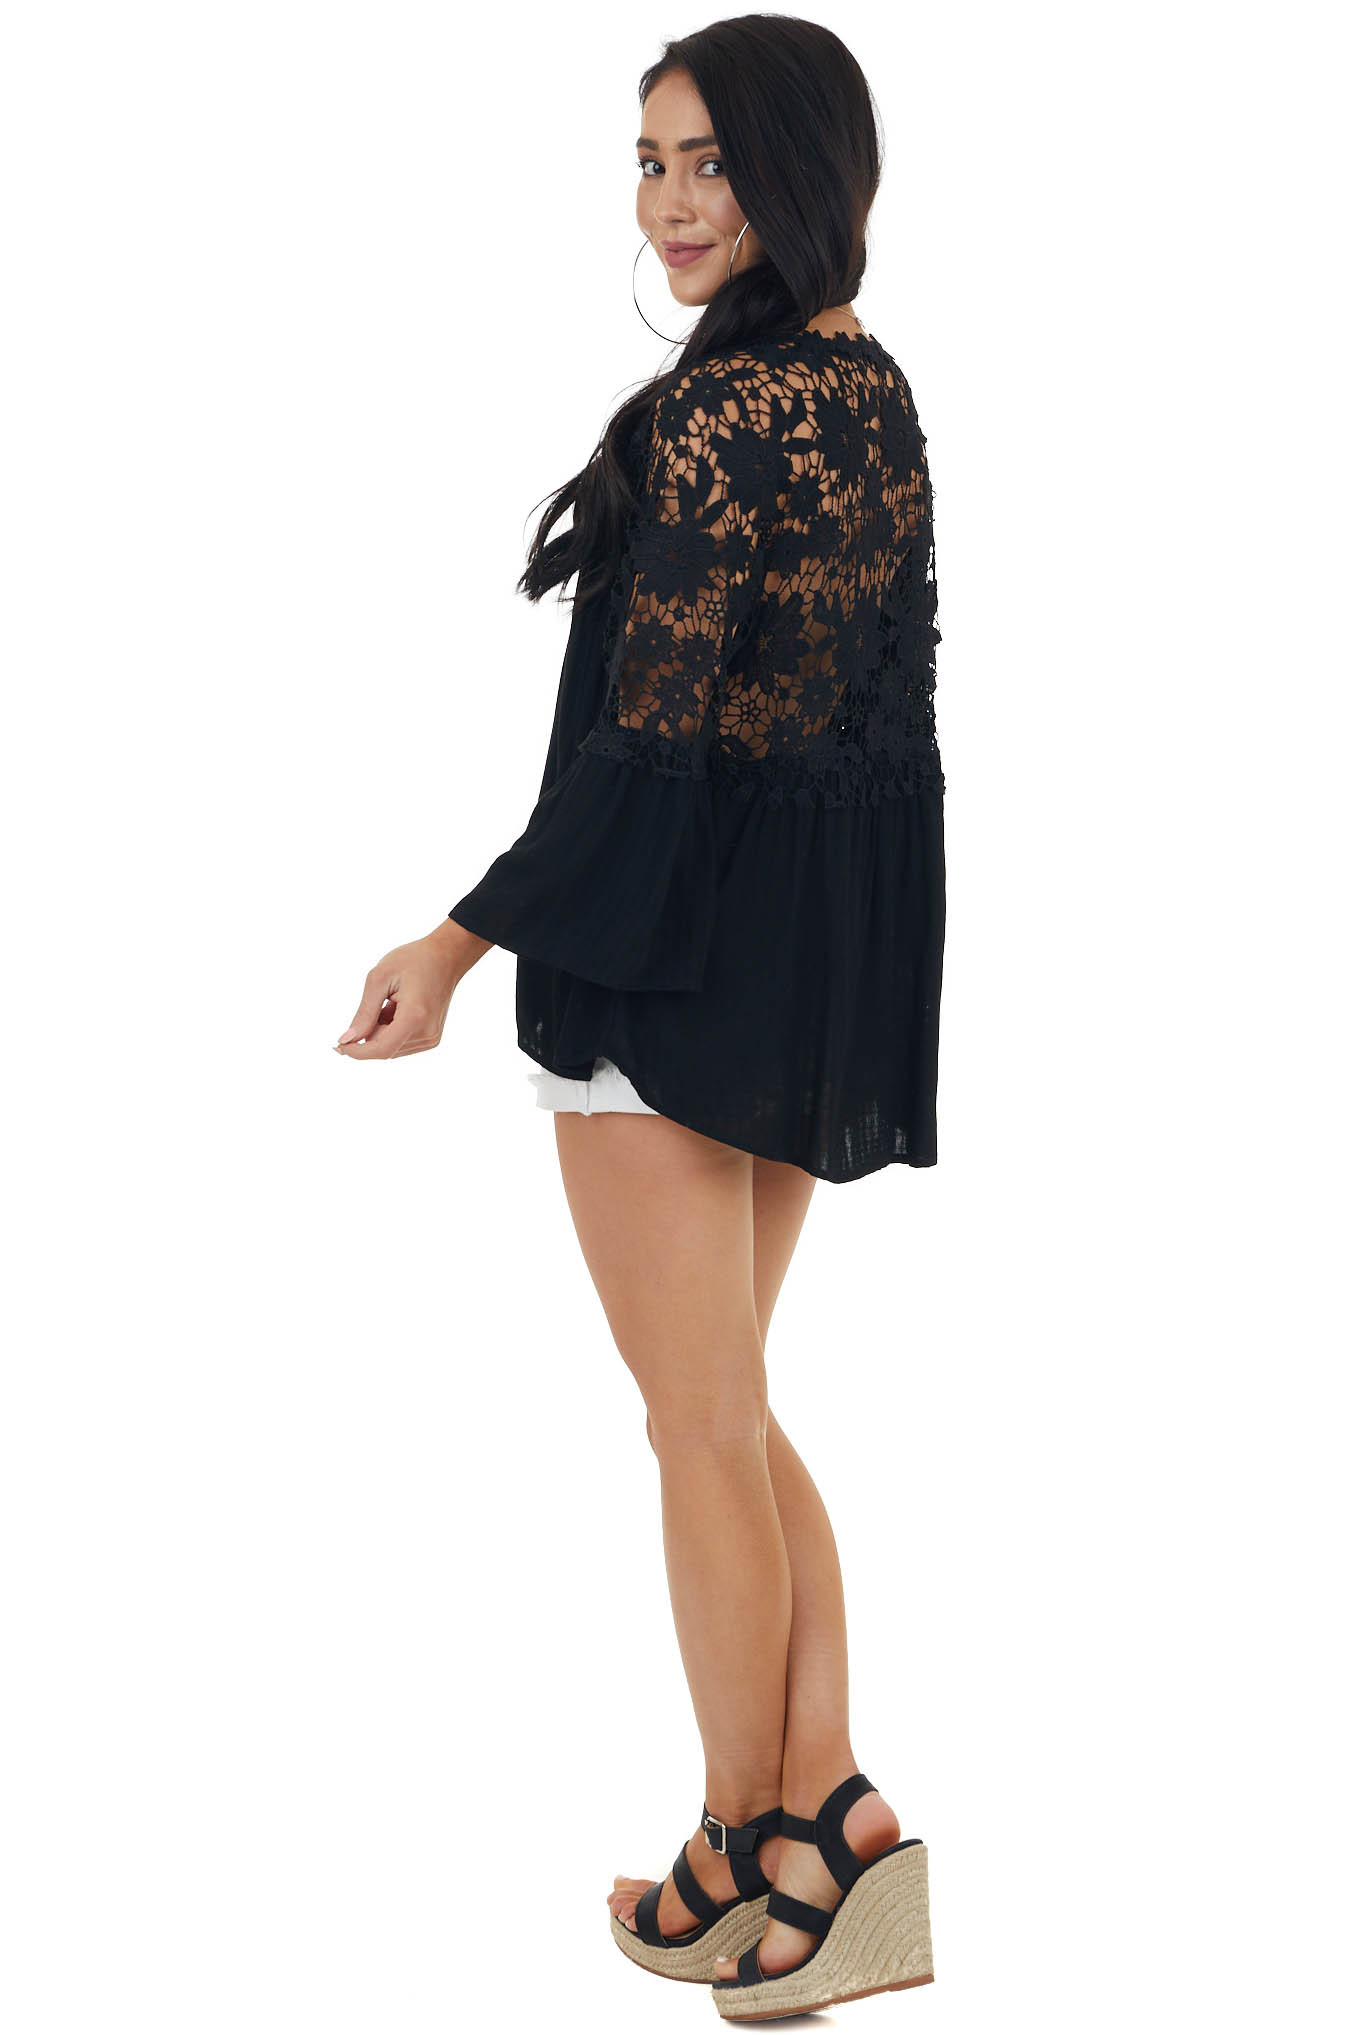 Black V Neck Blouse with Buttons and Crocheted Lace Details